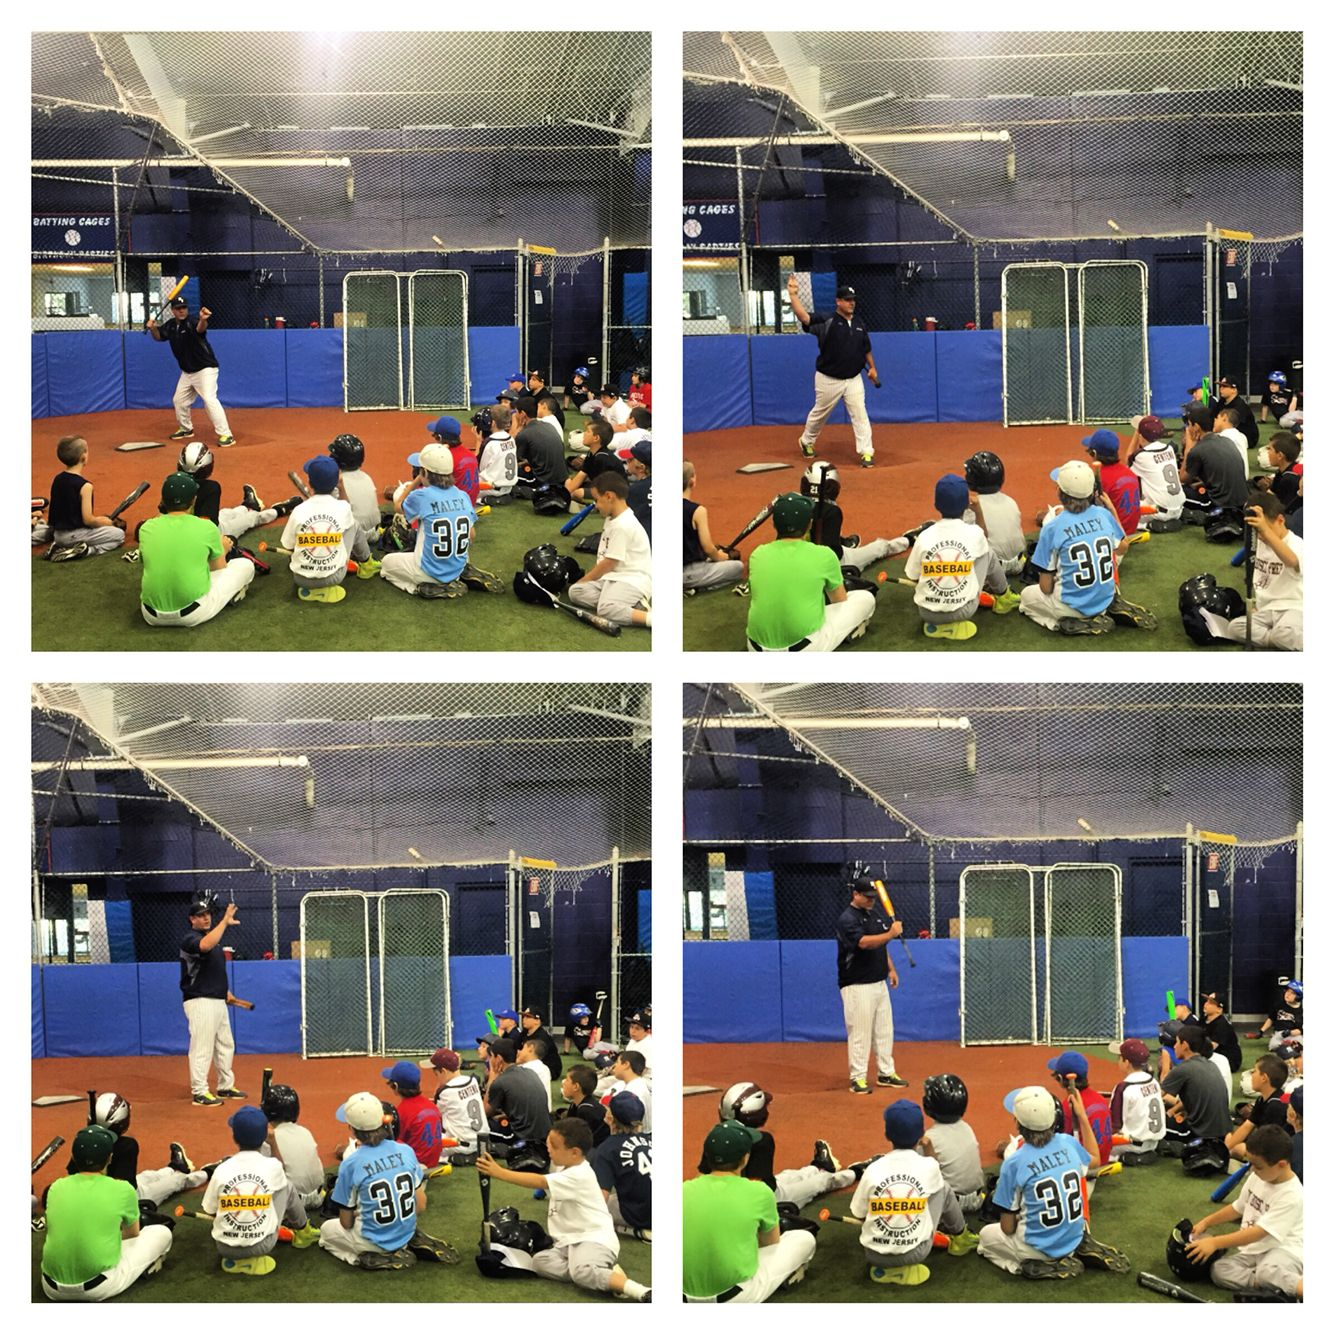 Pbi Indoor Baseballcamp 4 Day 1 Upper Hitting Mechanics With Steve Hayward Baseball Camp Coaching Indoor